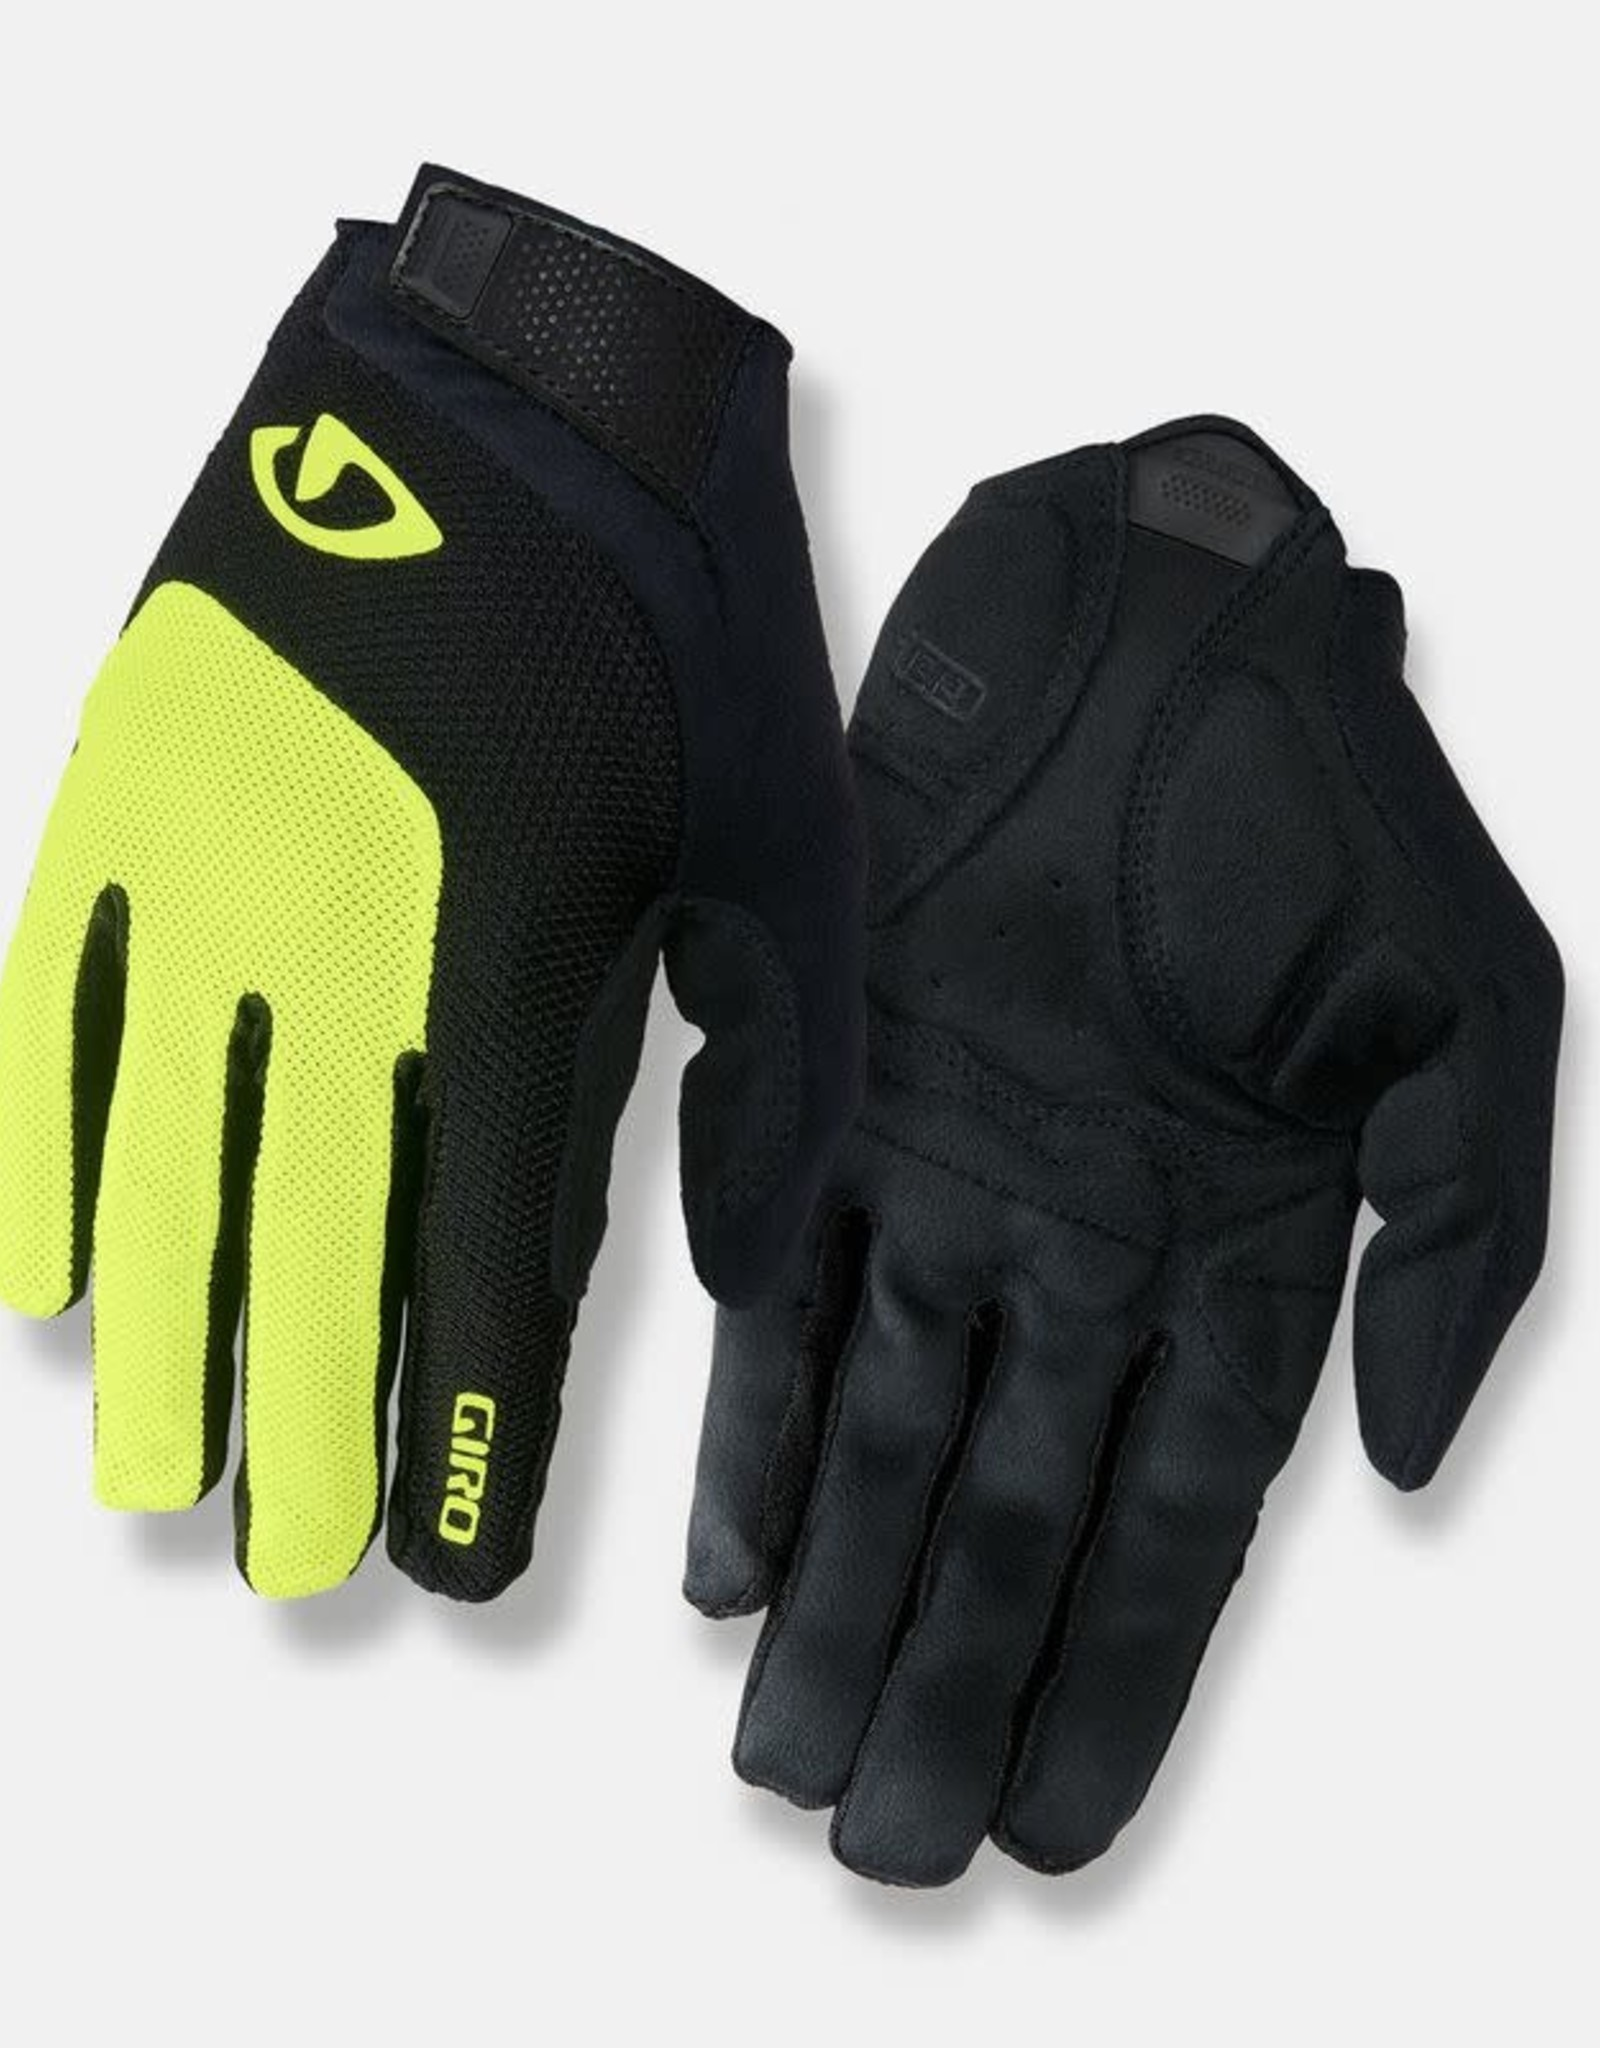 Giro GIRO BRAVO LF GEL Gloves